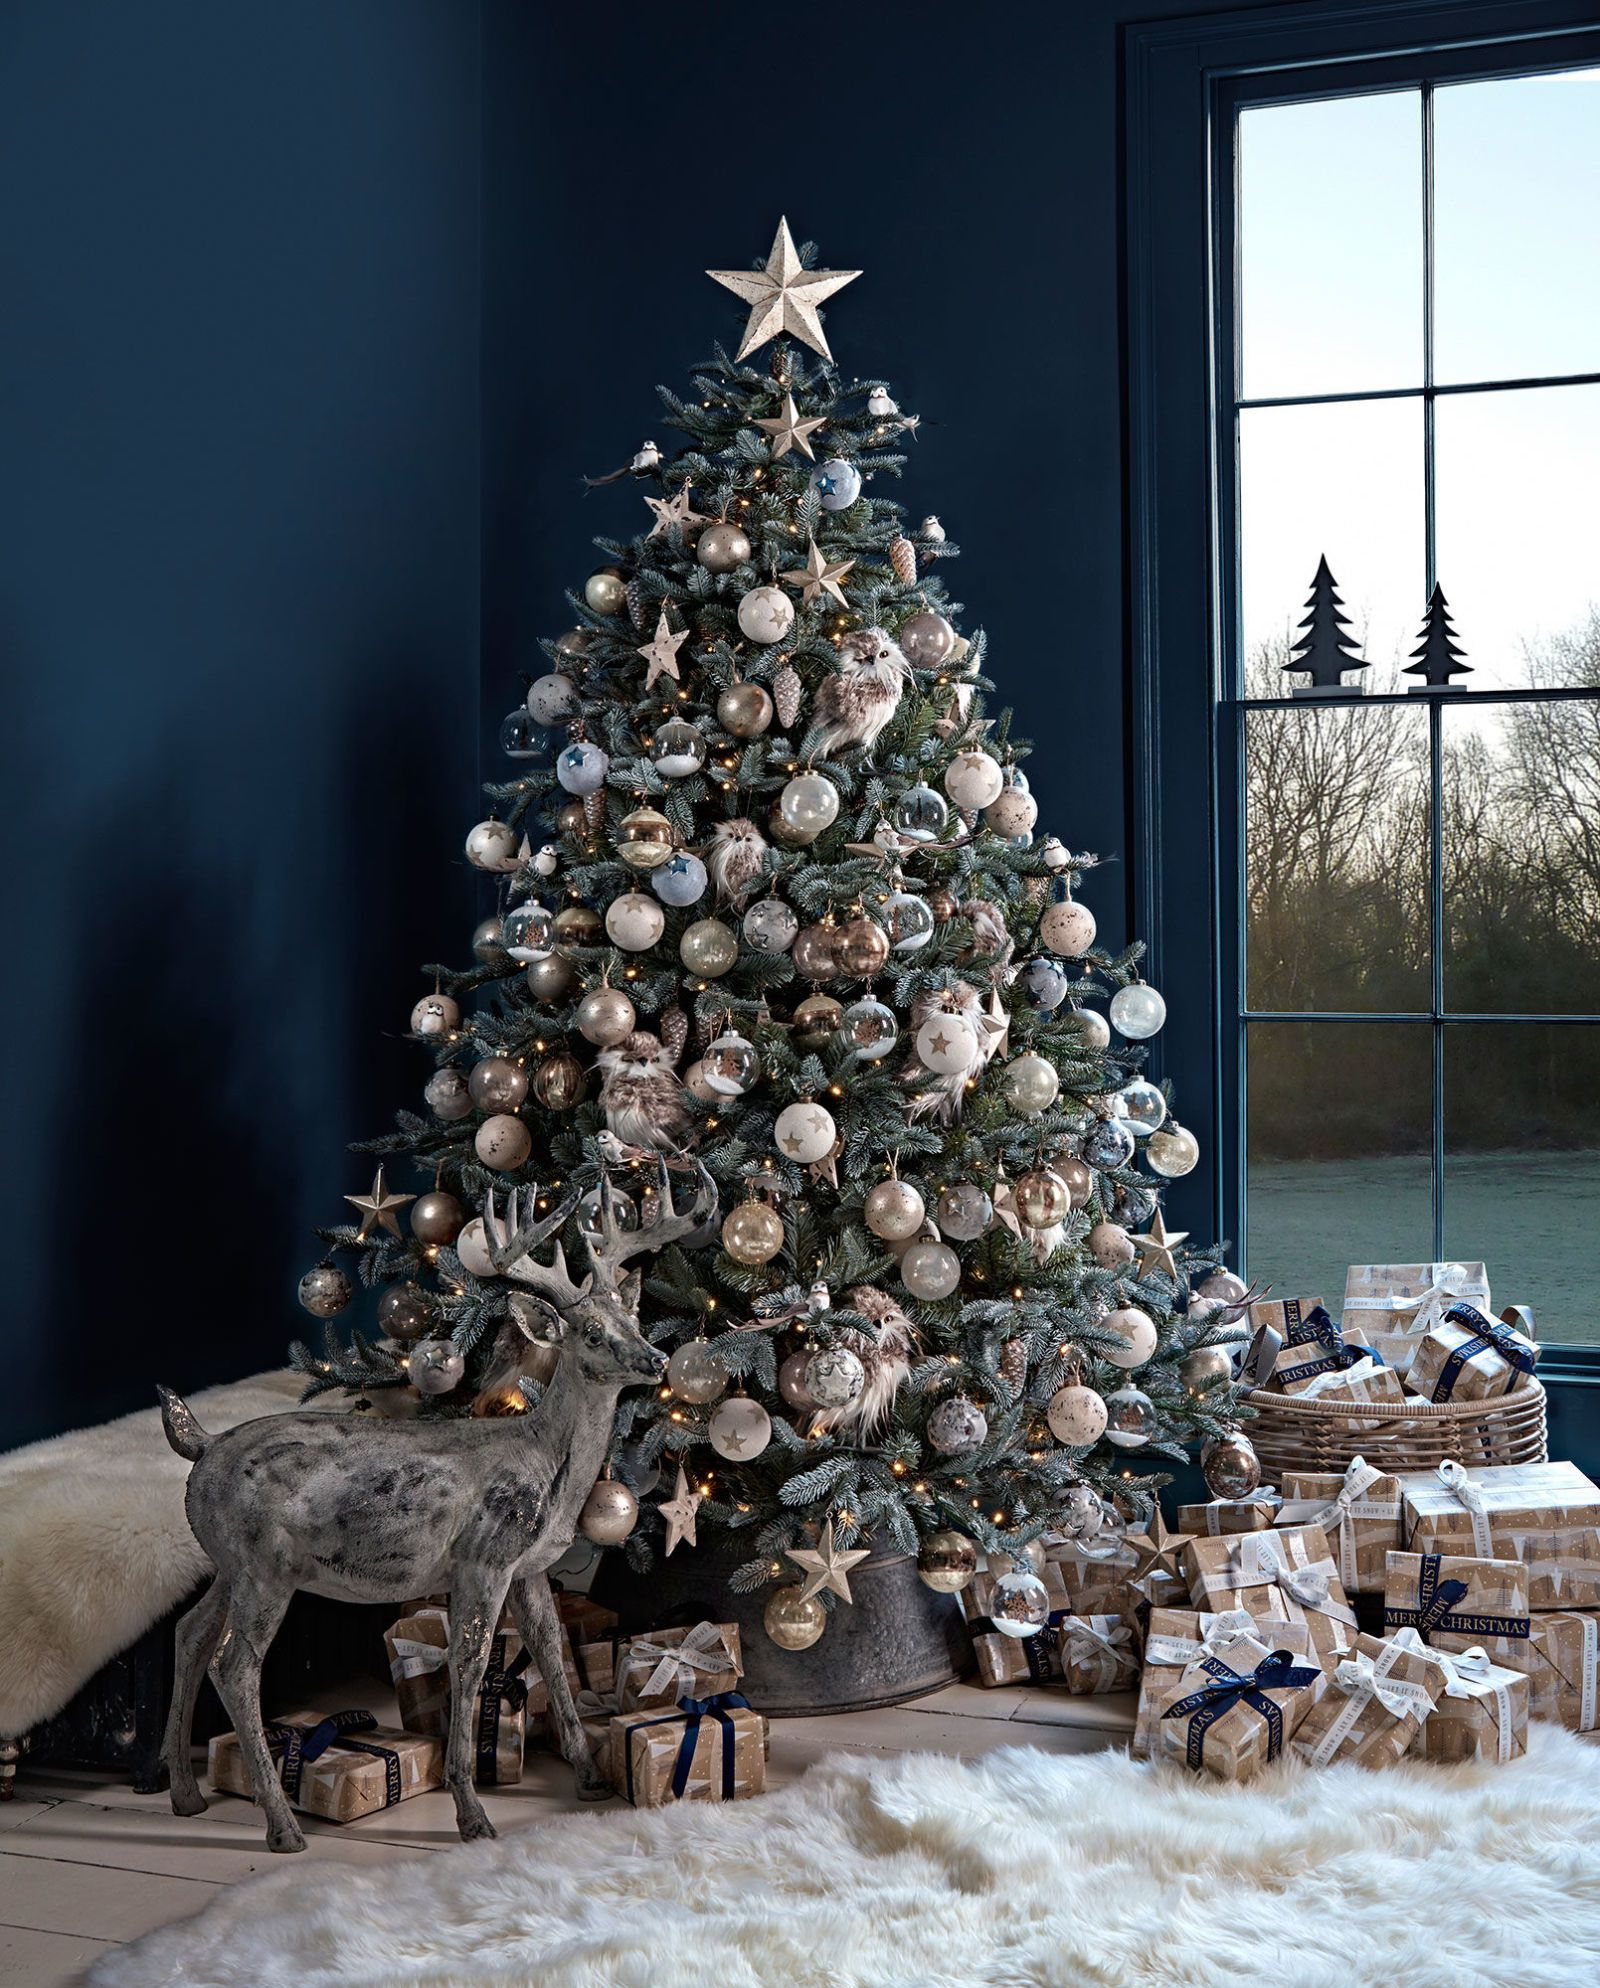 3 Of The Best Christmas Decorating Trends For 2019 According To Our Editors Christmas Decor Trends Christmas Tree Themes Christmas Decorations